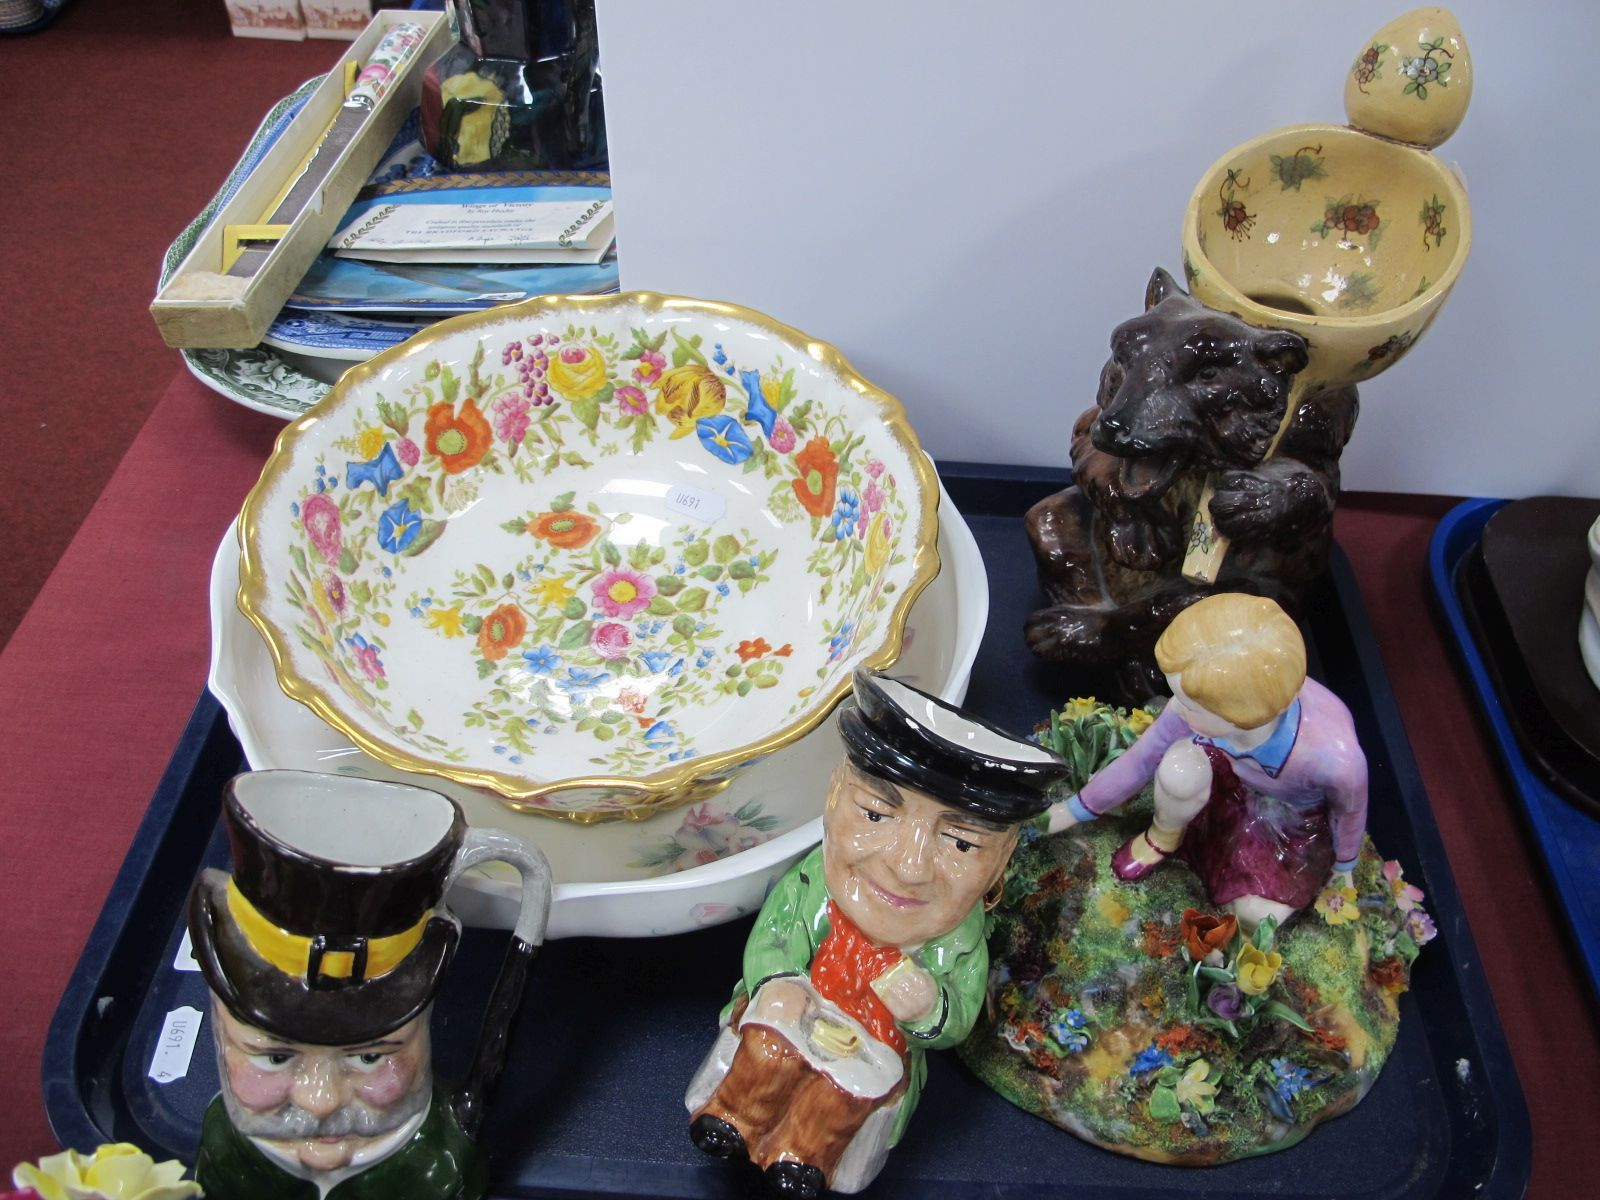 A XIX Century Pottery Bear Jug, 24cm high. T. Bayley figurine, Aynsley and other bowl, Toby jugs,